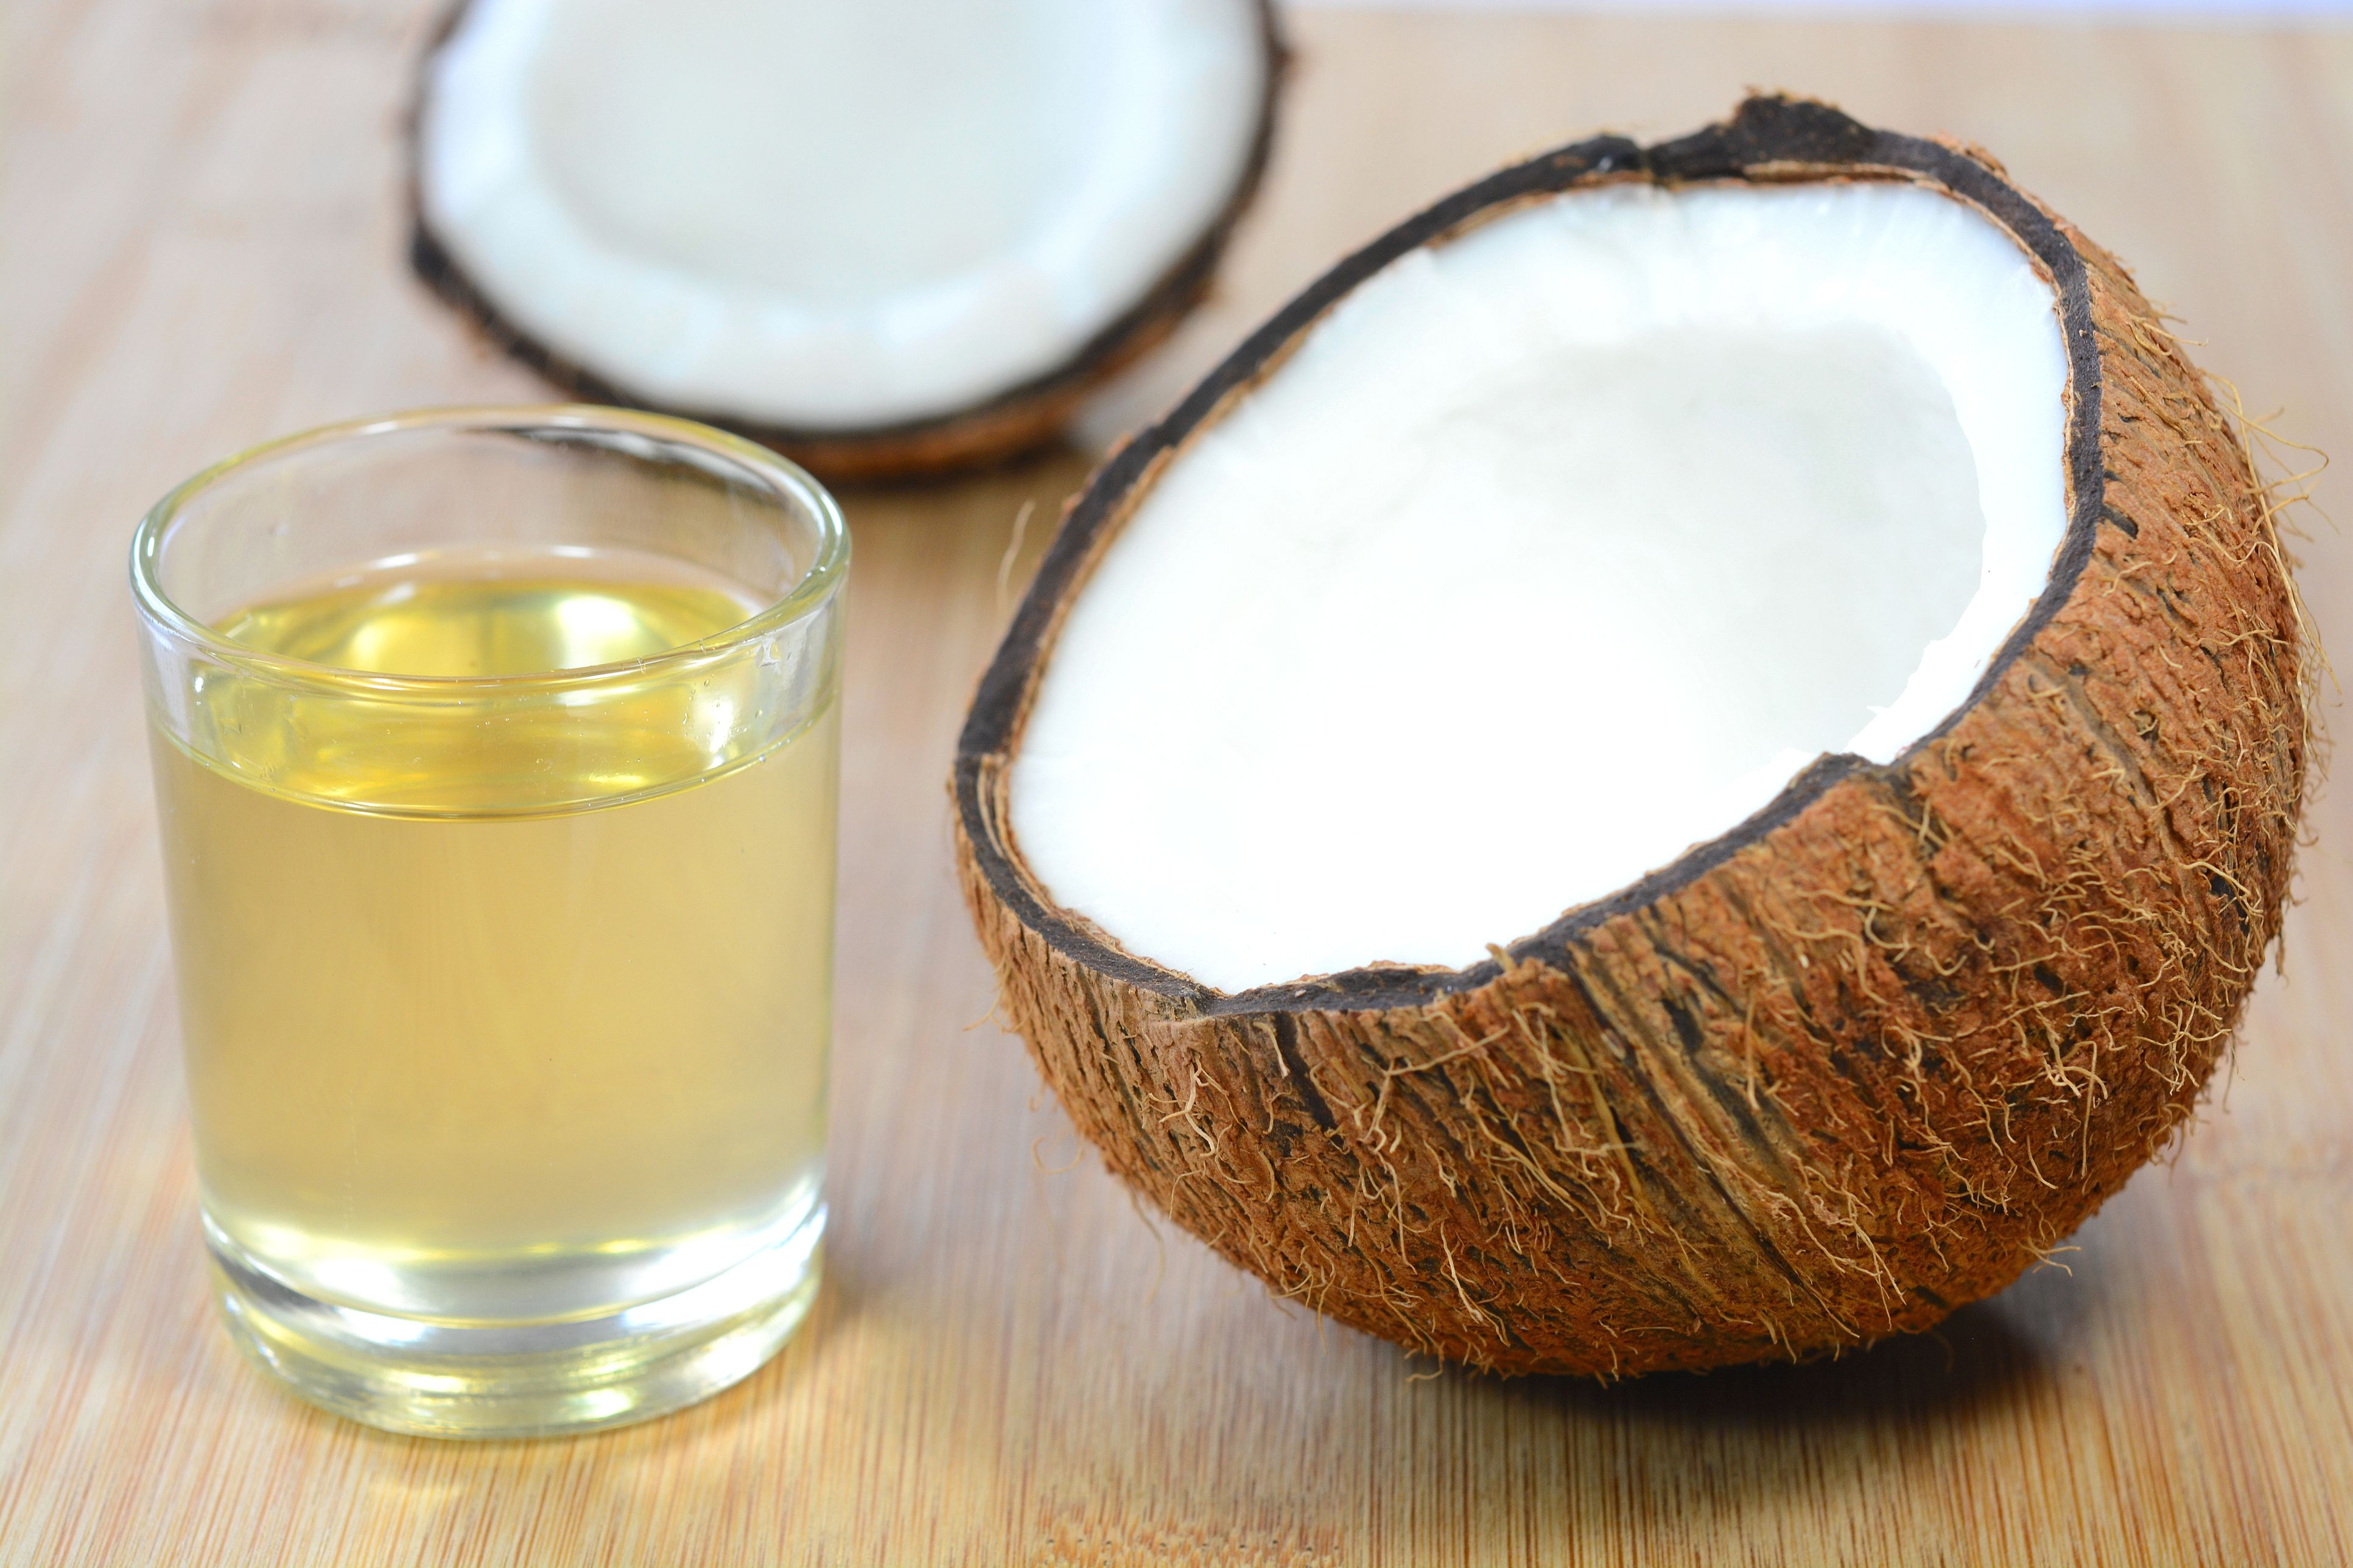 HOW TO START A COCONUT OIL MANUFACTURING BUSINESS